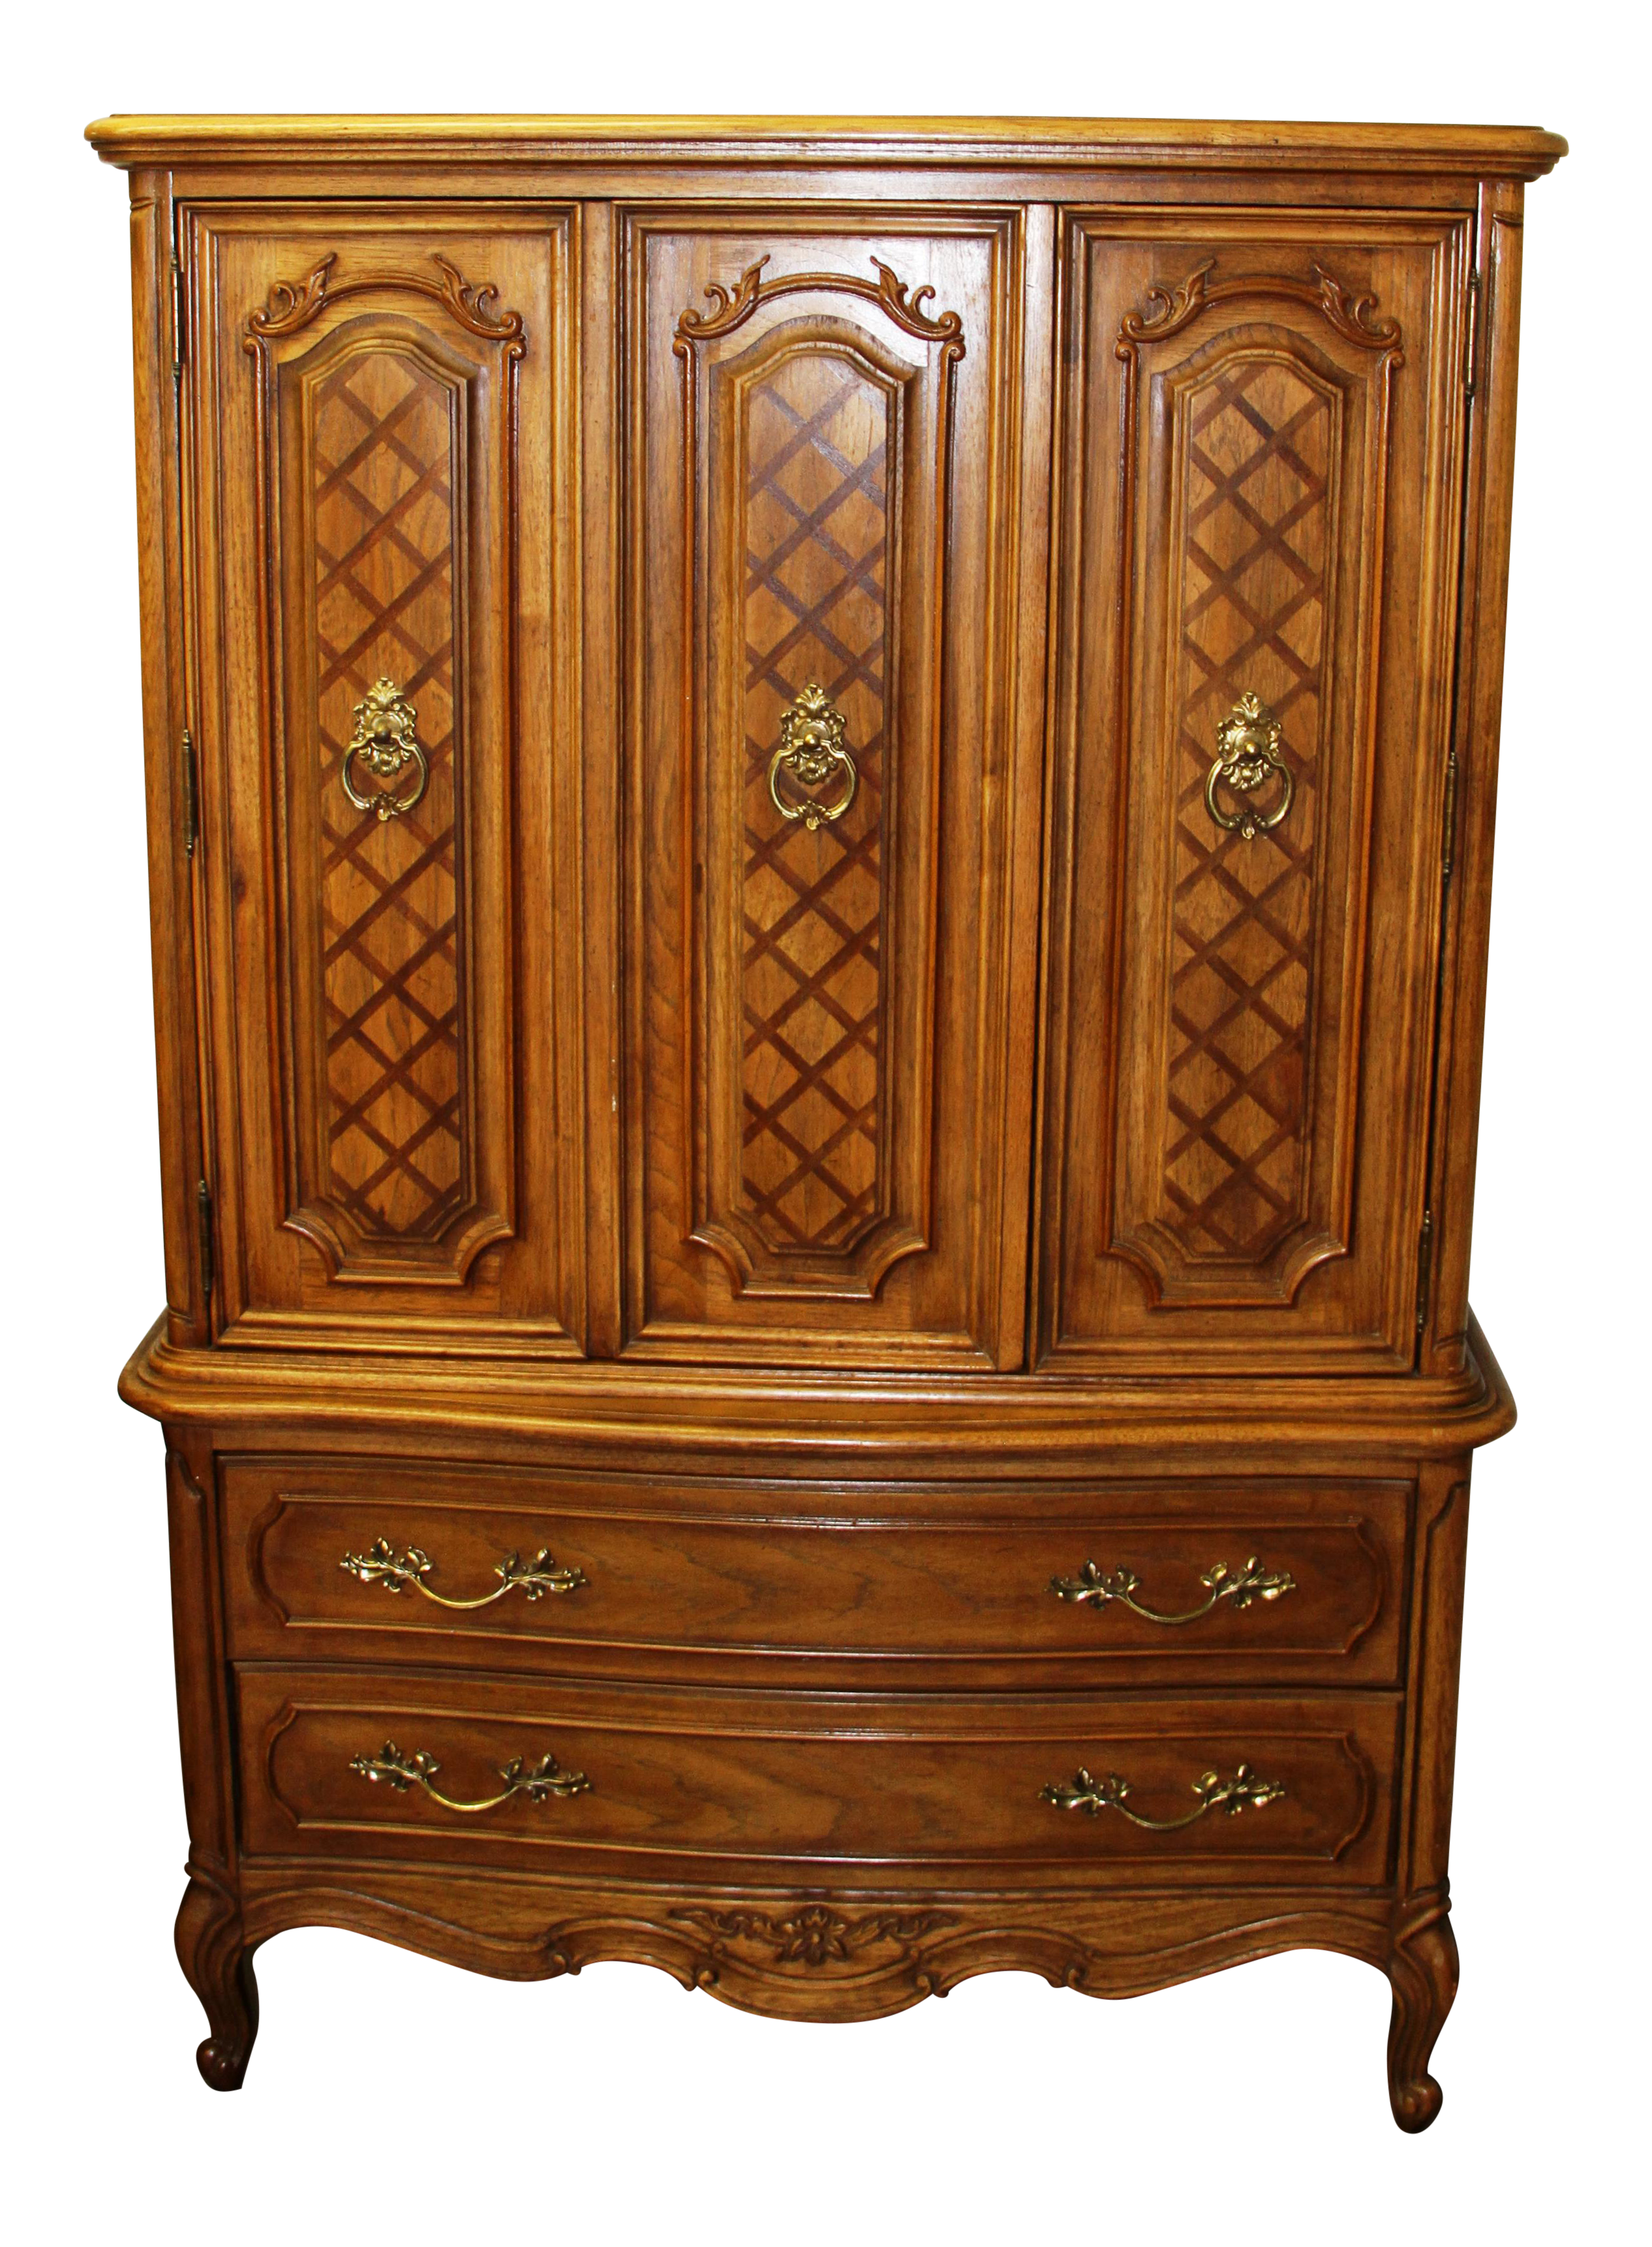 Vintage Thomasville French Court Solid Wood Bedroom Dresser Tall Chest Of Drawers Chairish